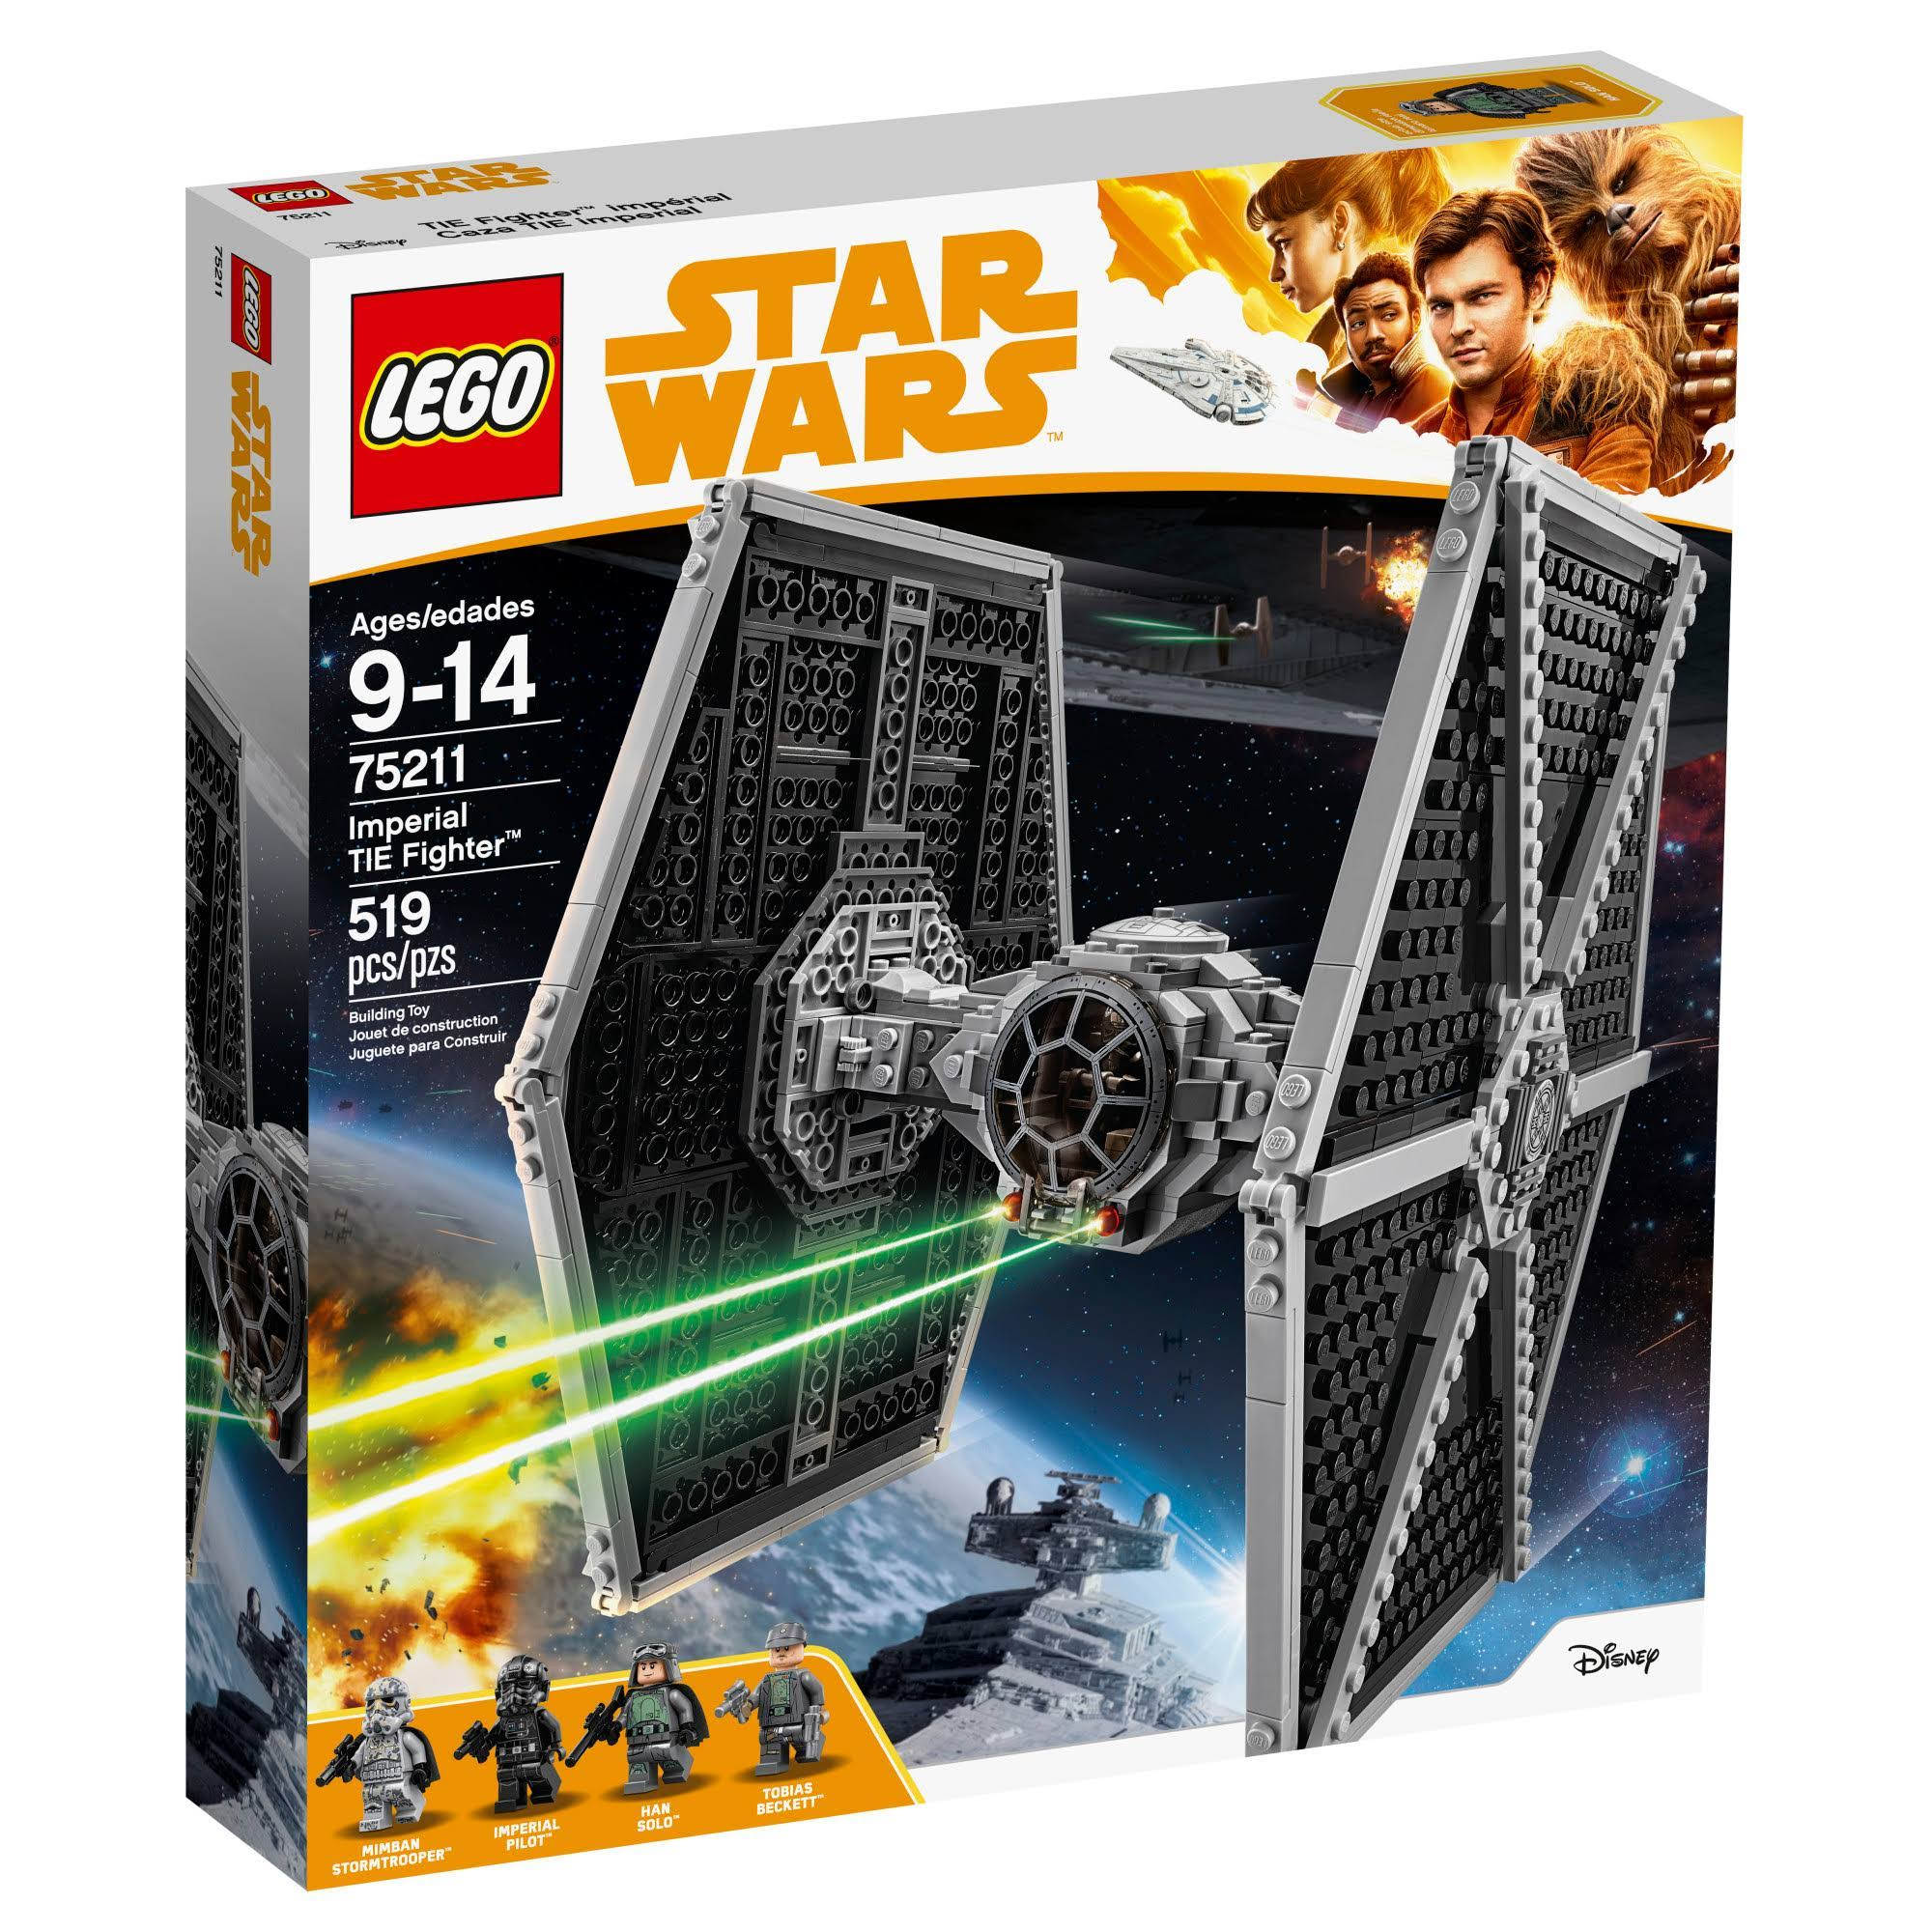 Lego Star Wars 75211 Building Block Puzzle Toy Kit - Imperial Tie Fighter, 519pcs